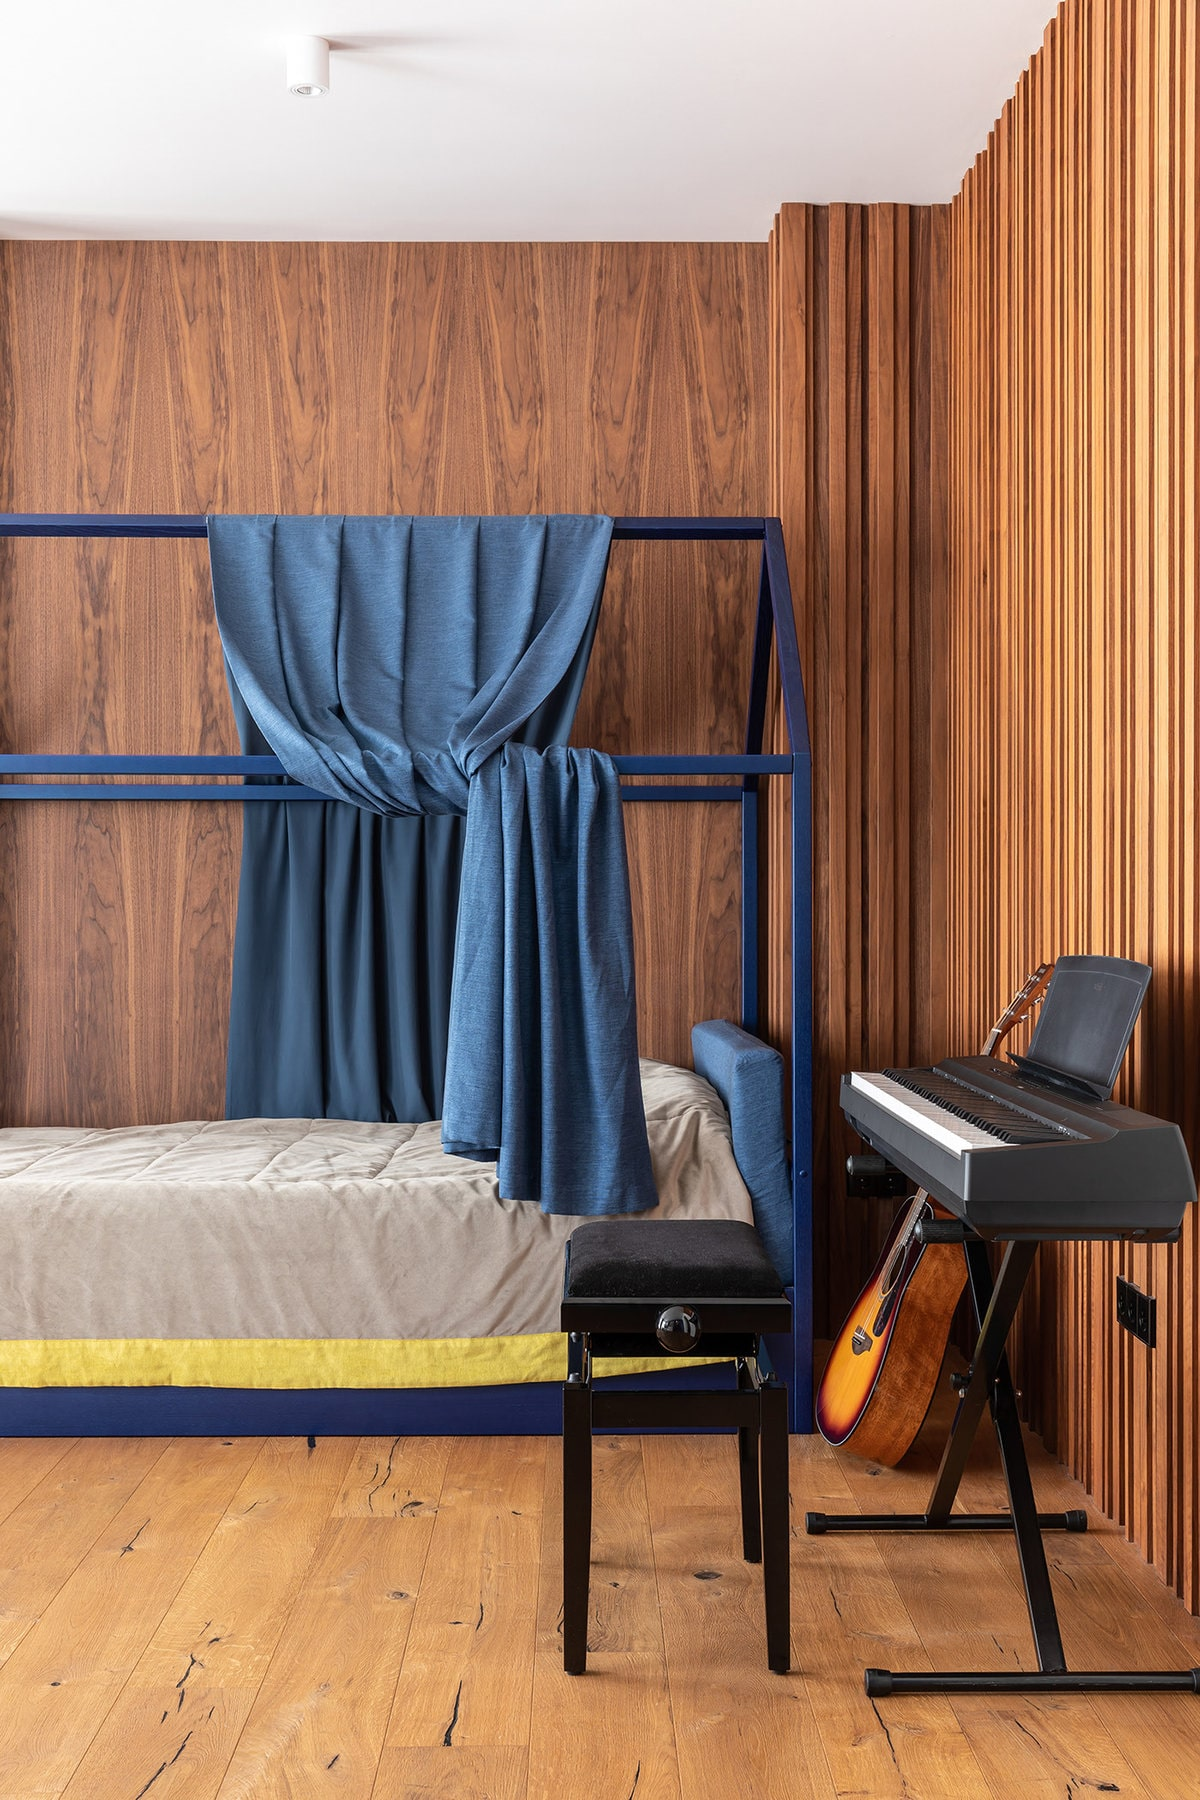 There is also a small music area at the side of the bed with a guitar and a propped up keyboard paired with a black stool.